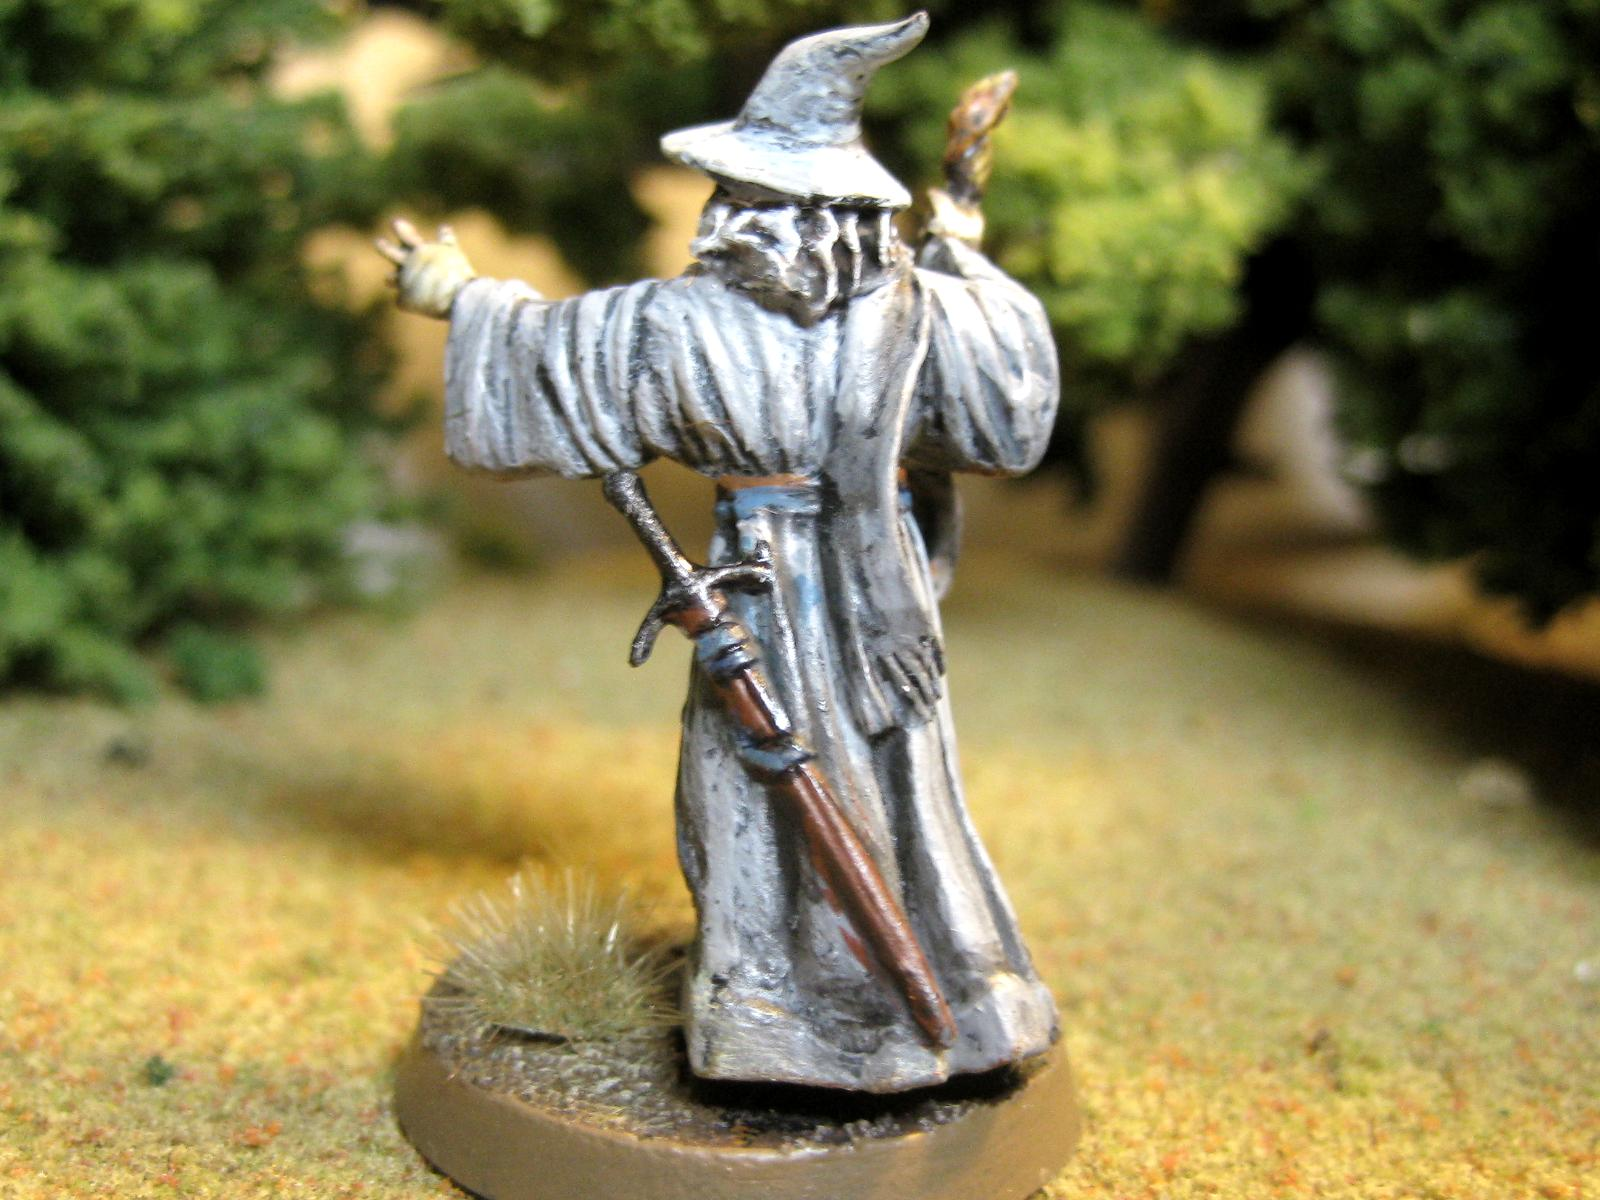 Gandalf The Grey, Grey, Hobbit, Lord Of The Rings